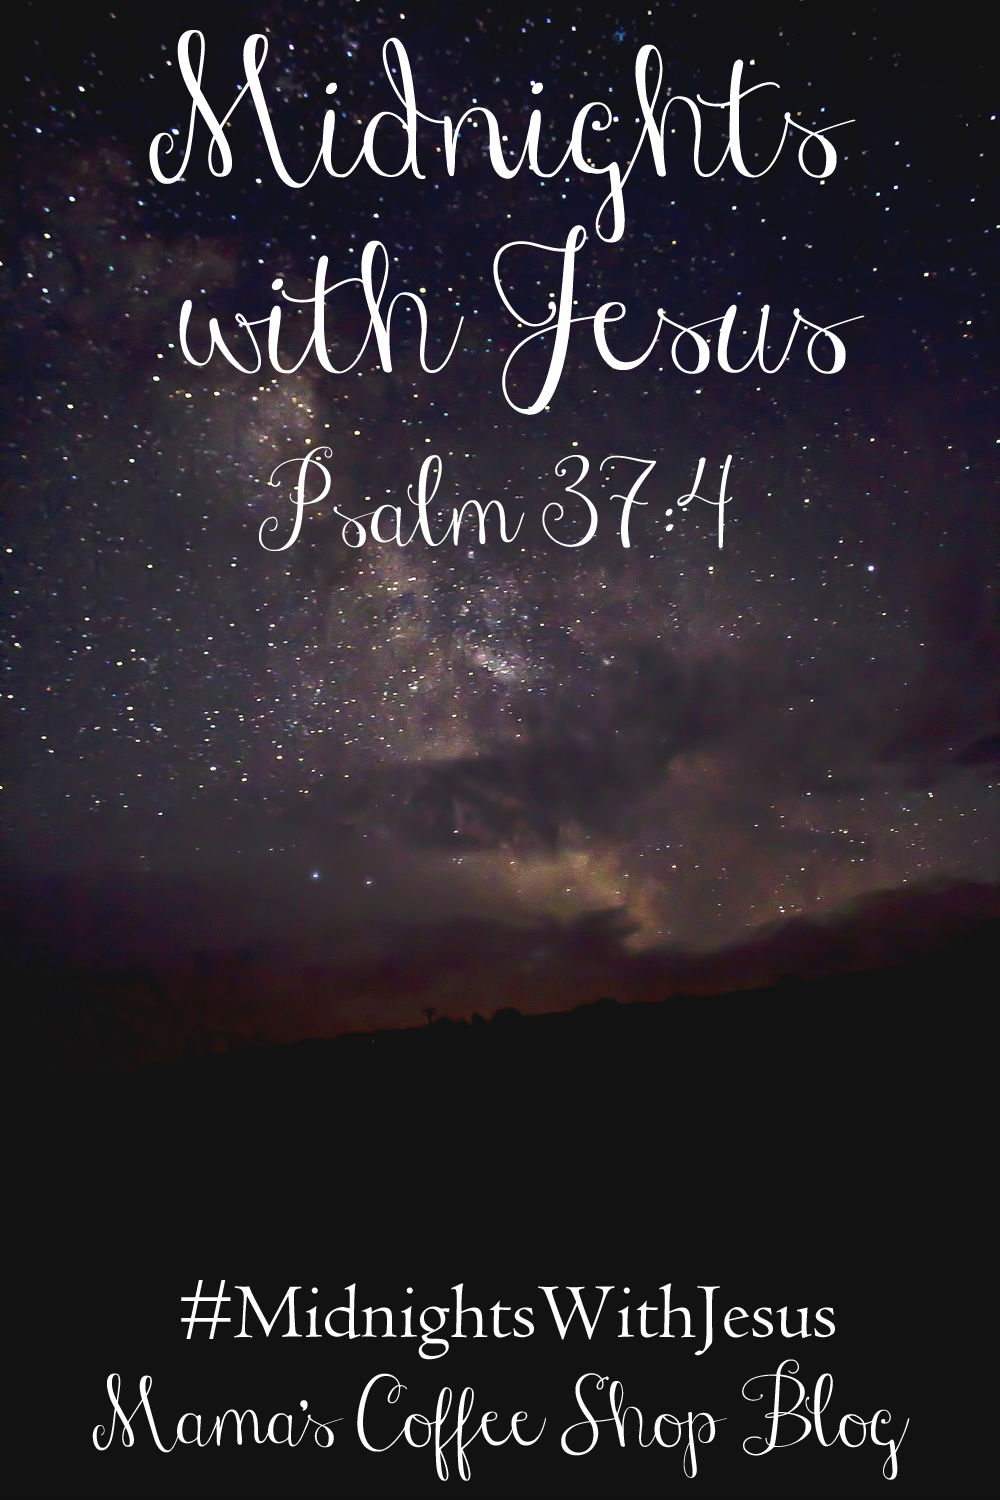 Midnights With Jesus - Psalm 37:4